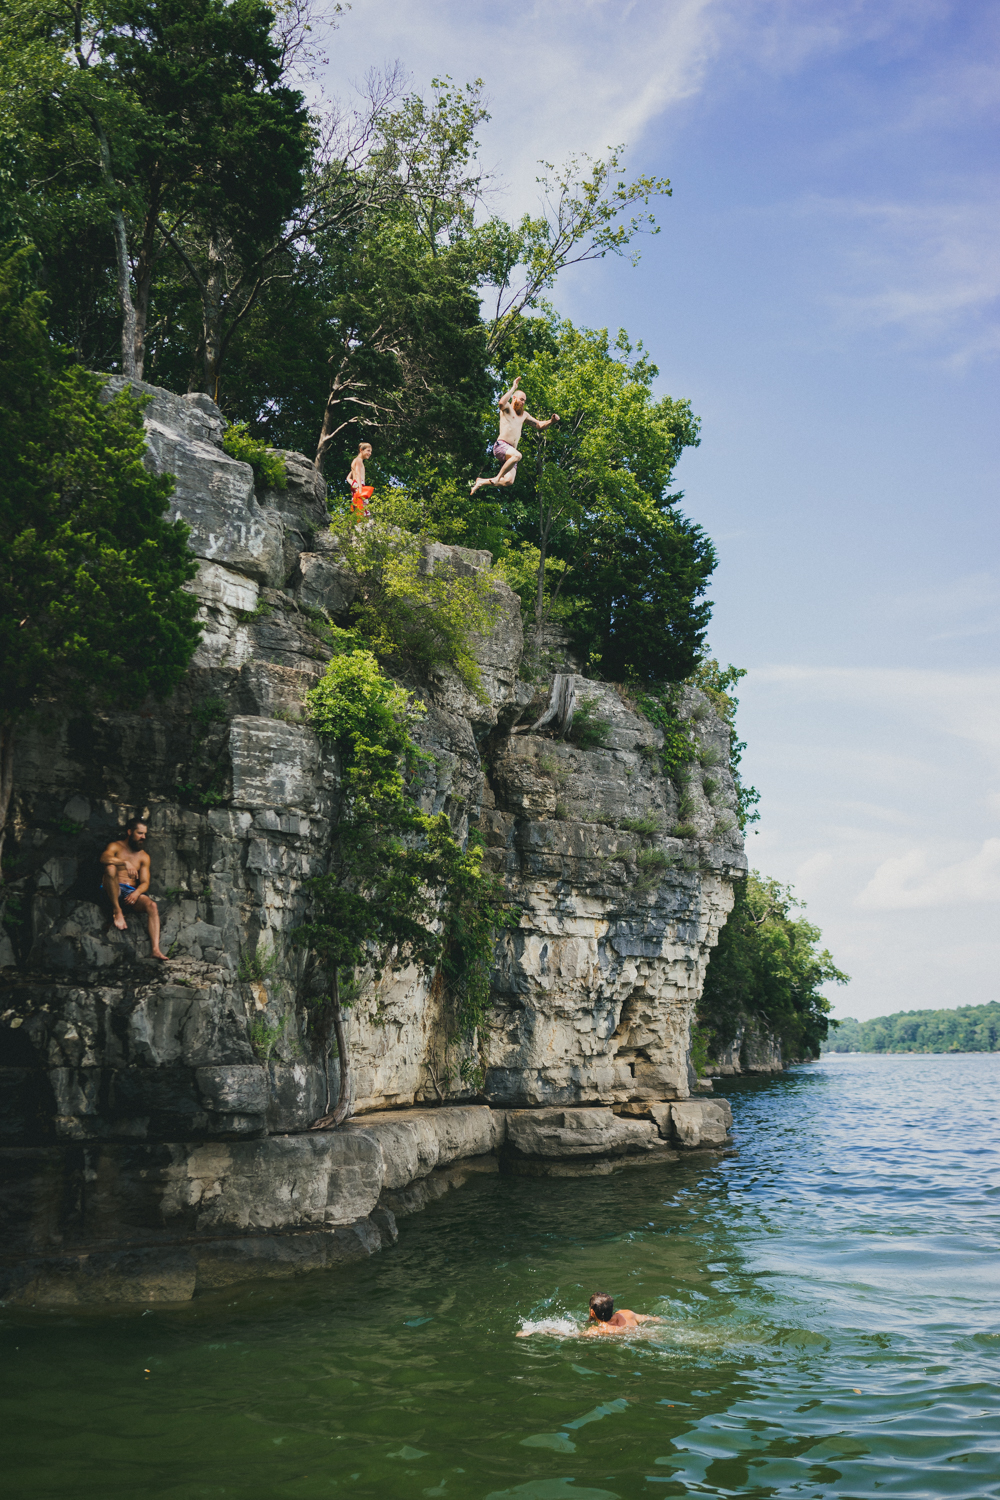 8.) Cliff Jumping at Percy Priest